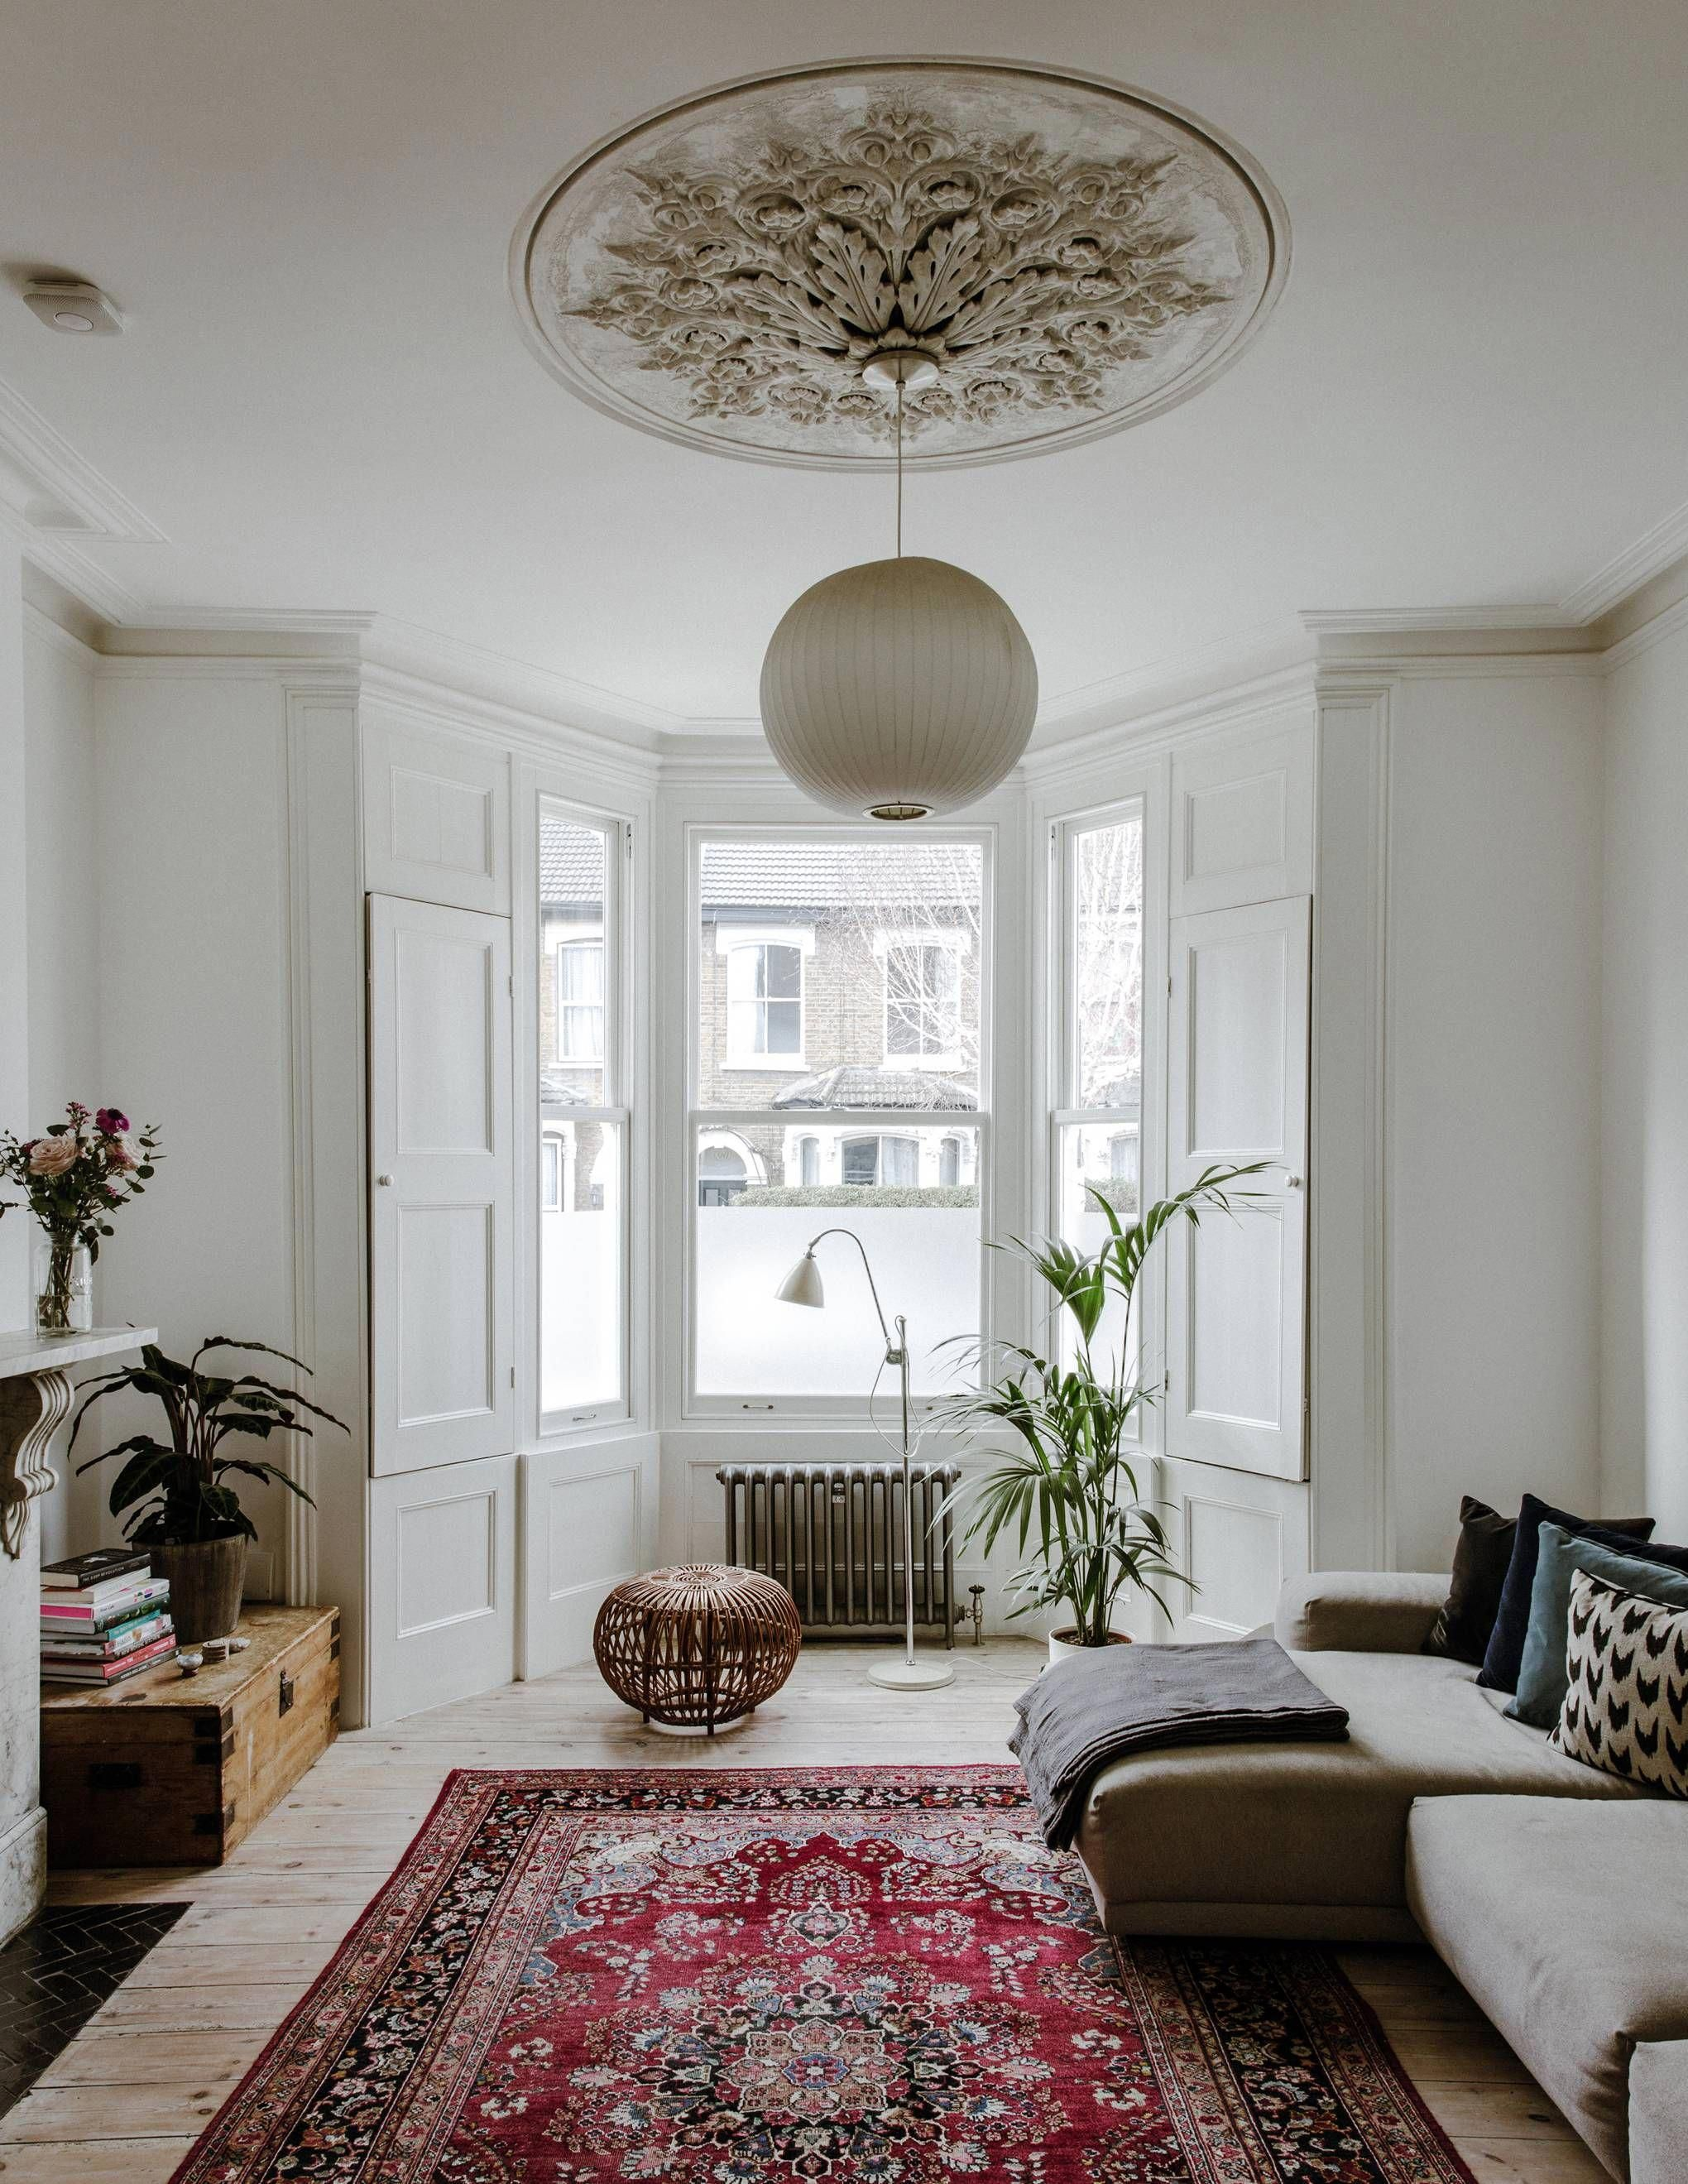 Roomstyle Furniture Home Design And Decor Ideas Designer Living Room Designs 20190525 Rugs In Living Room Home Living Room Living Room Interior